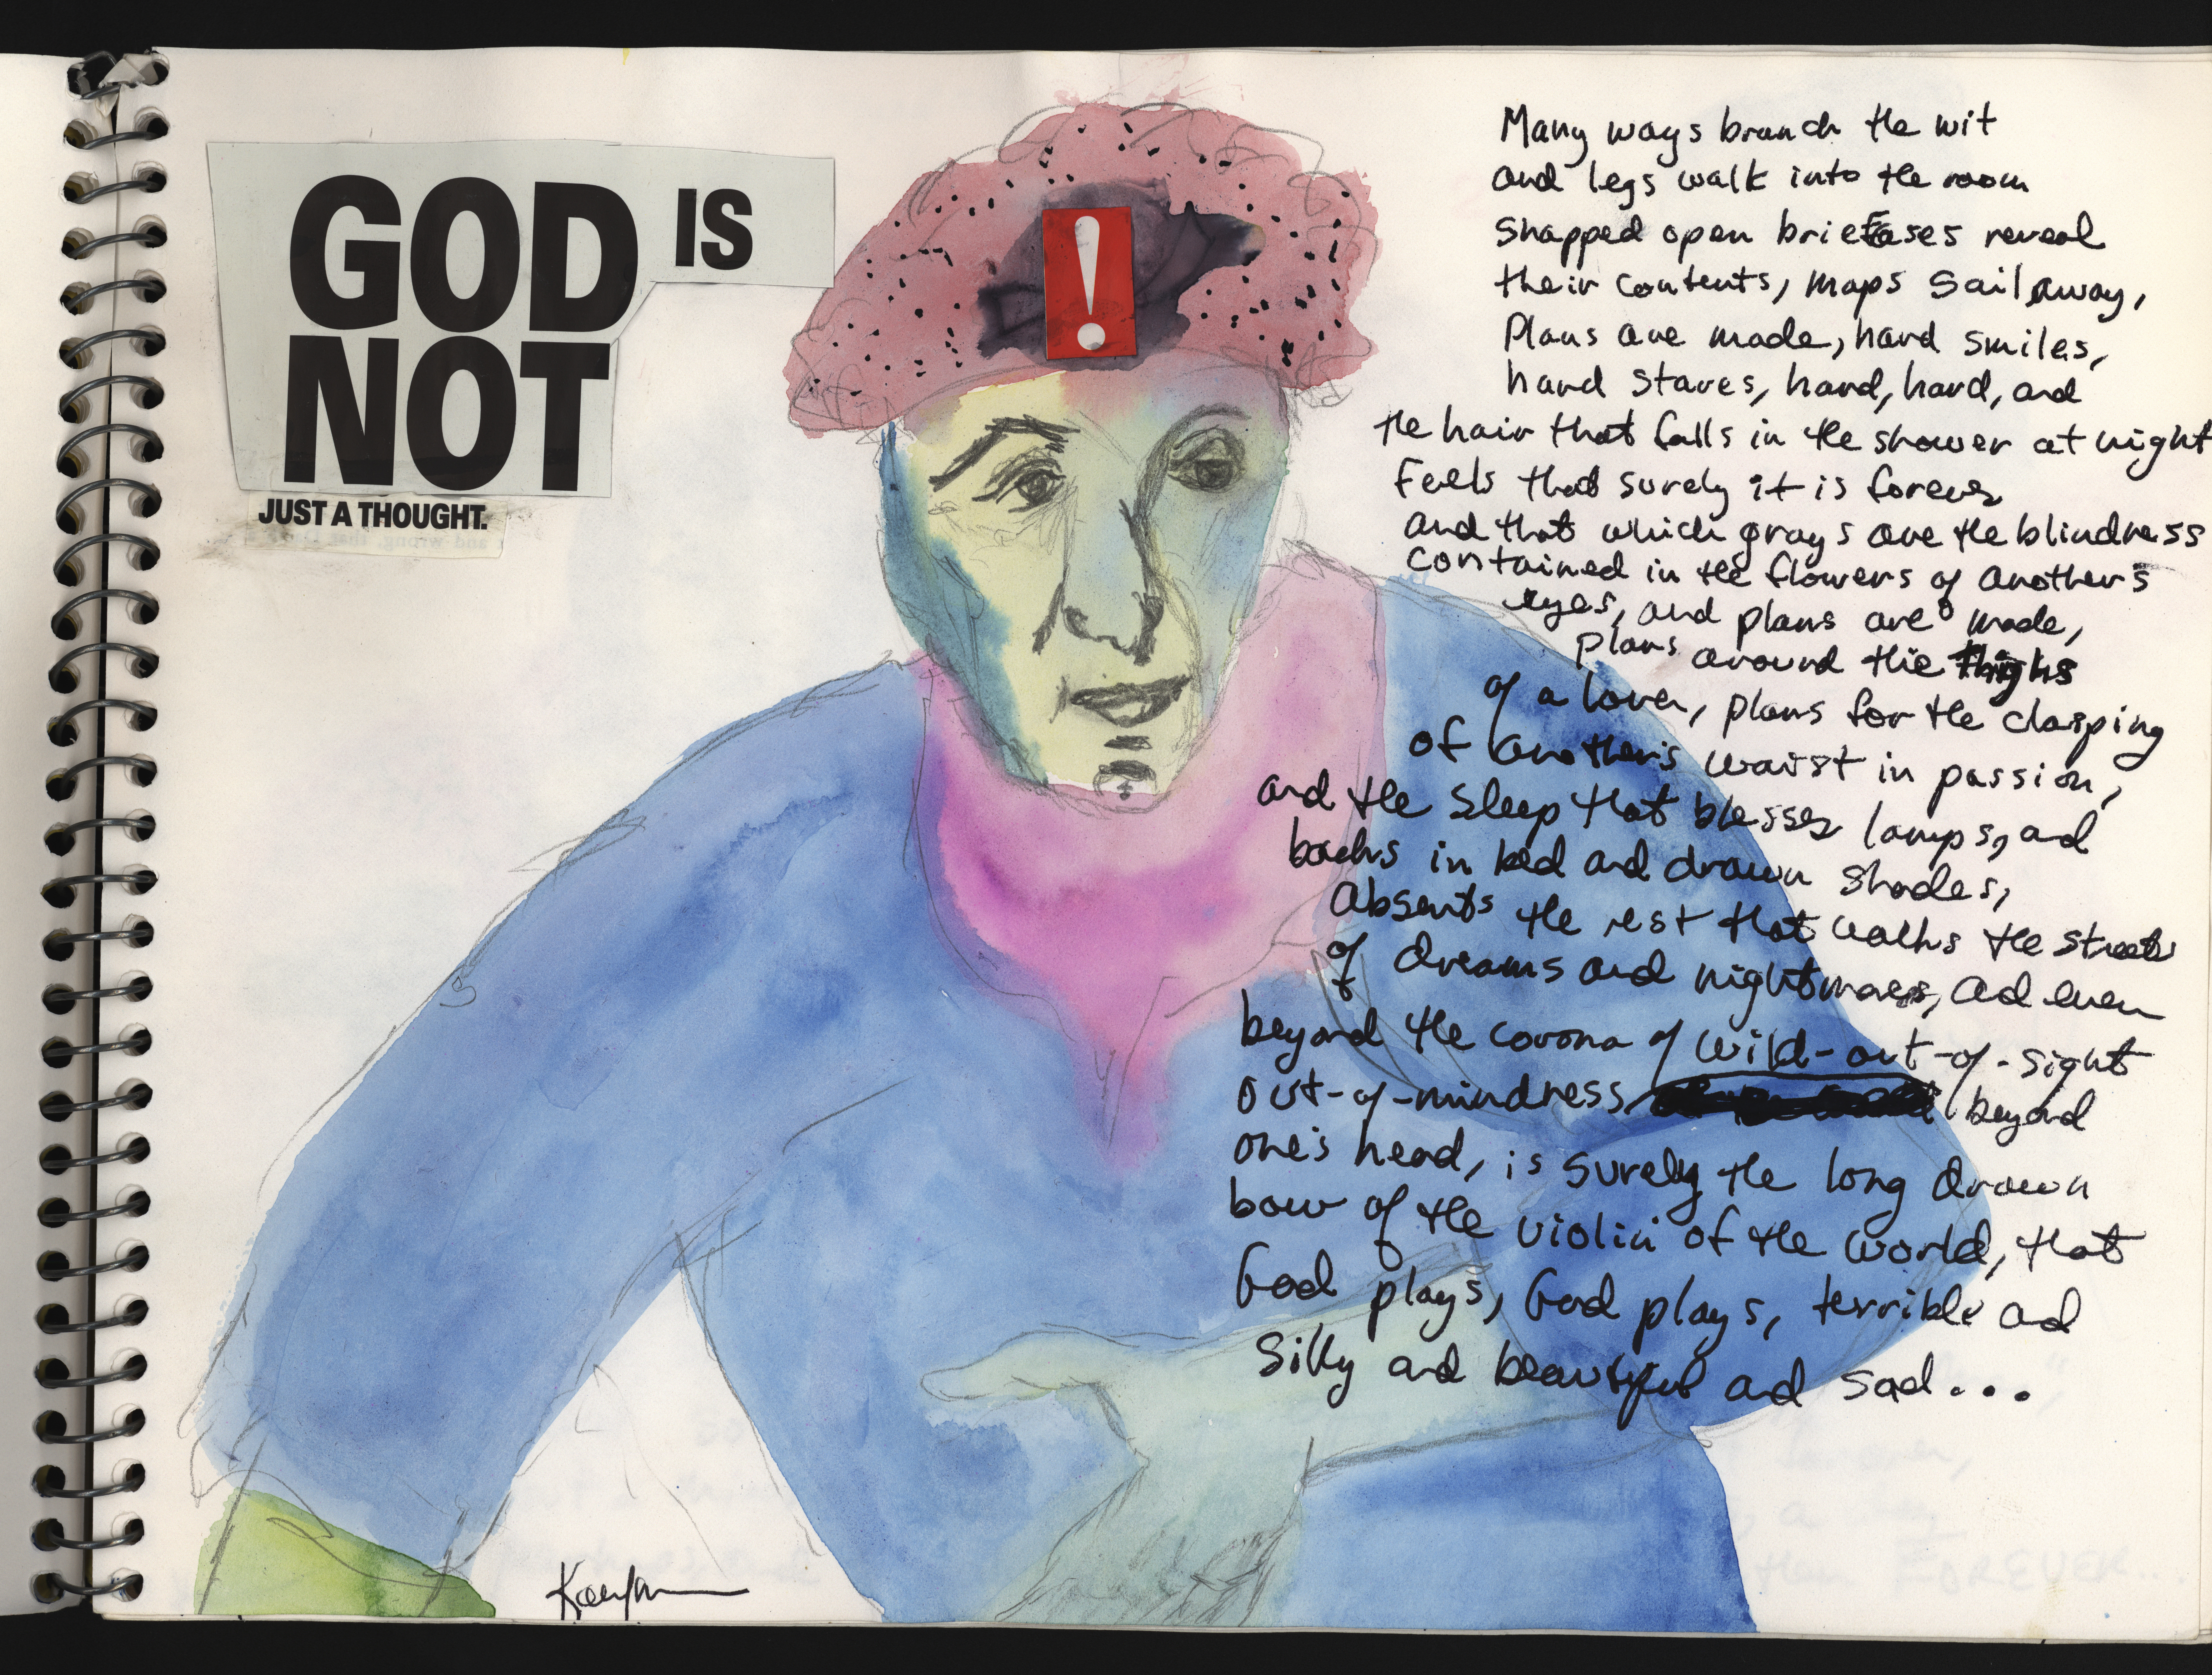 """God is not just a thought,"" poem and sketch in pen and ink with watercolor and mixed media, undated"